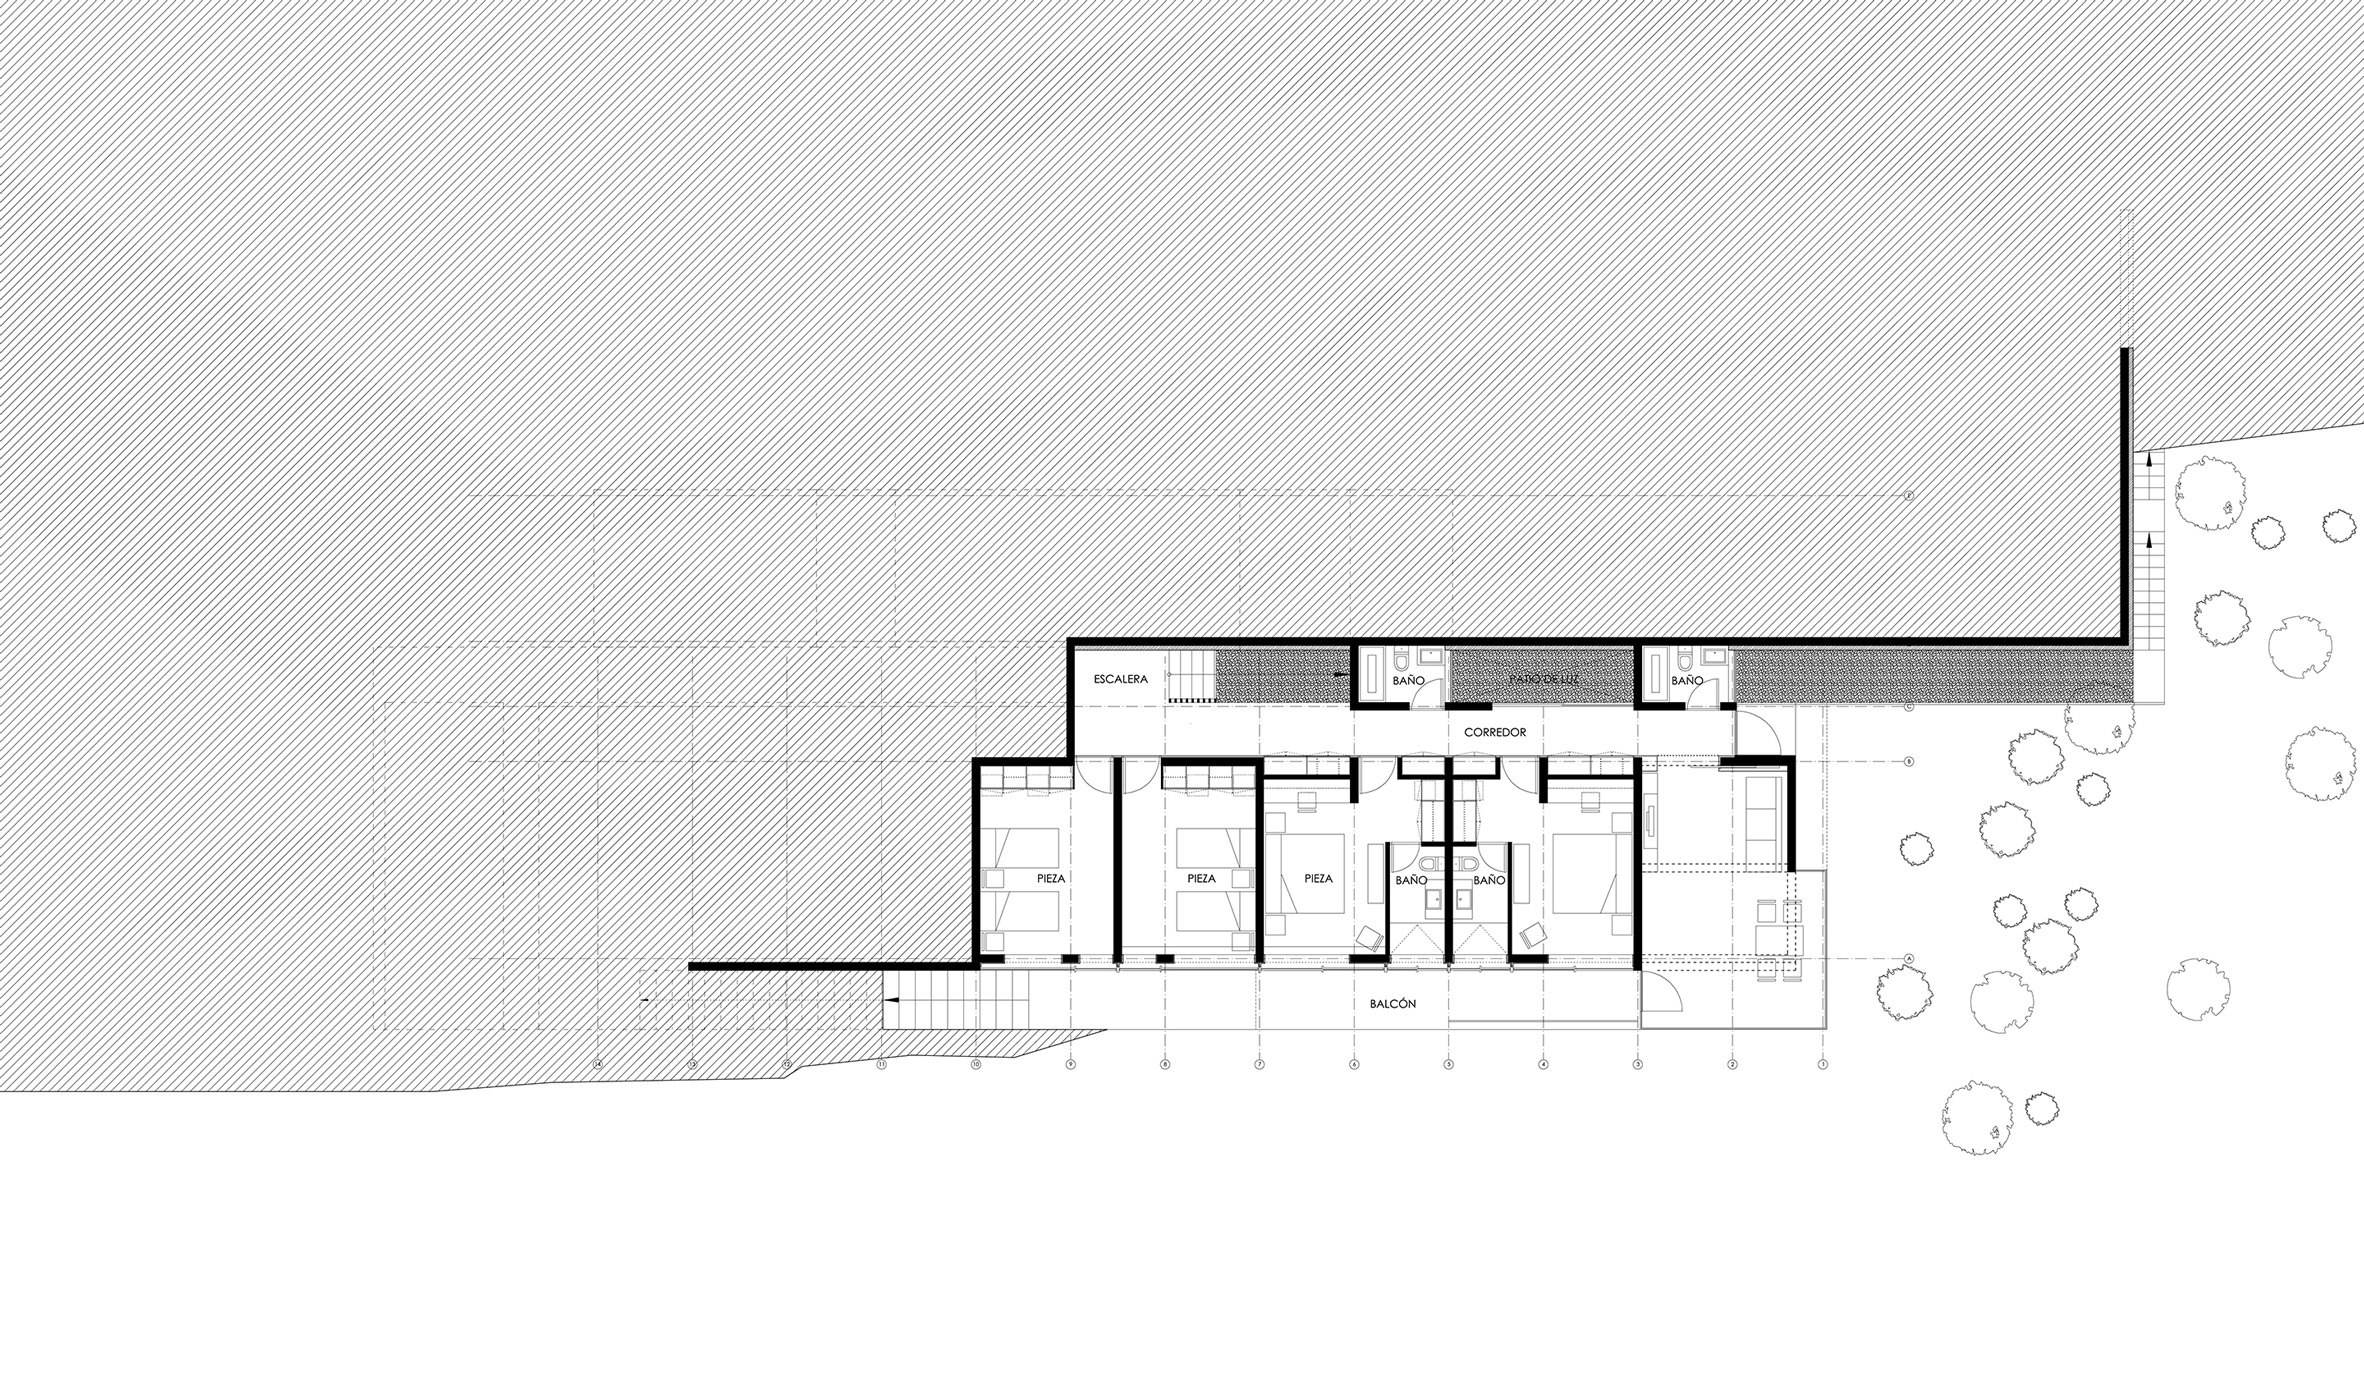 main floor plan casa el boldo by sun arquitectos